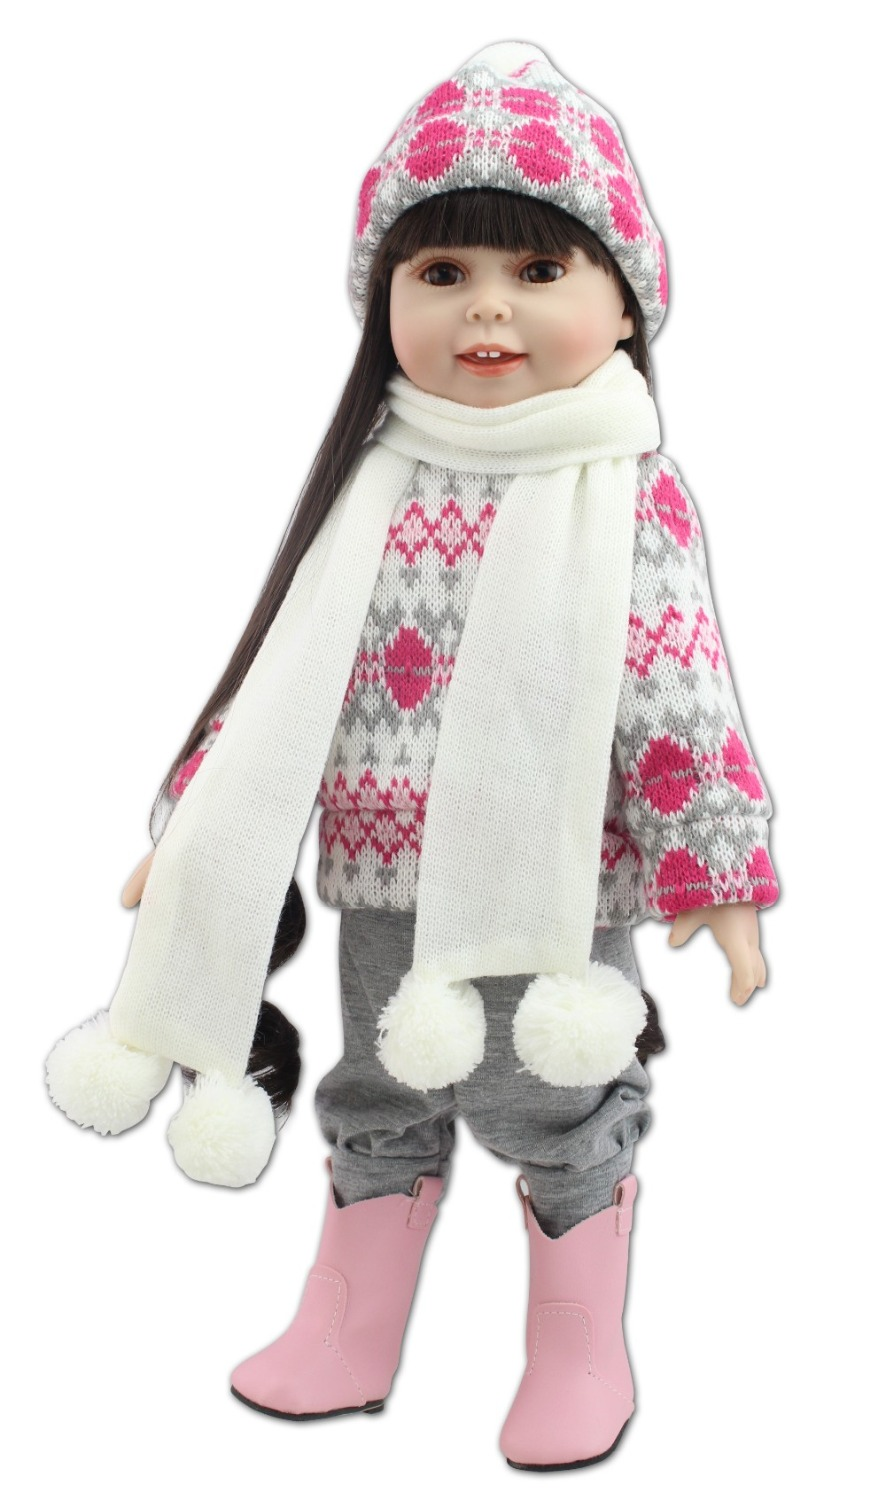 18inches fashion popular American girl doll winter suit fashion play doll education toy for kids'christmas gifts lifelike american 18 inches girl doll prices toy for children vinyl princess doll toys girl newest design